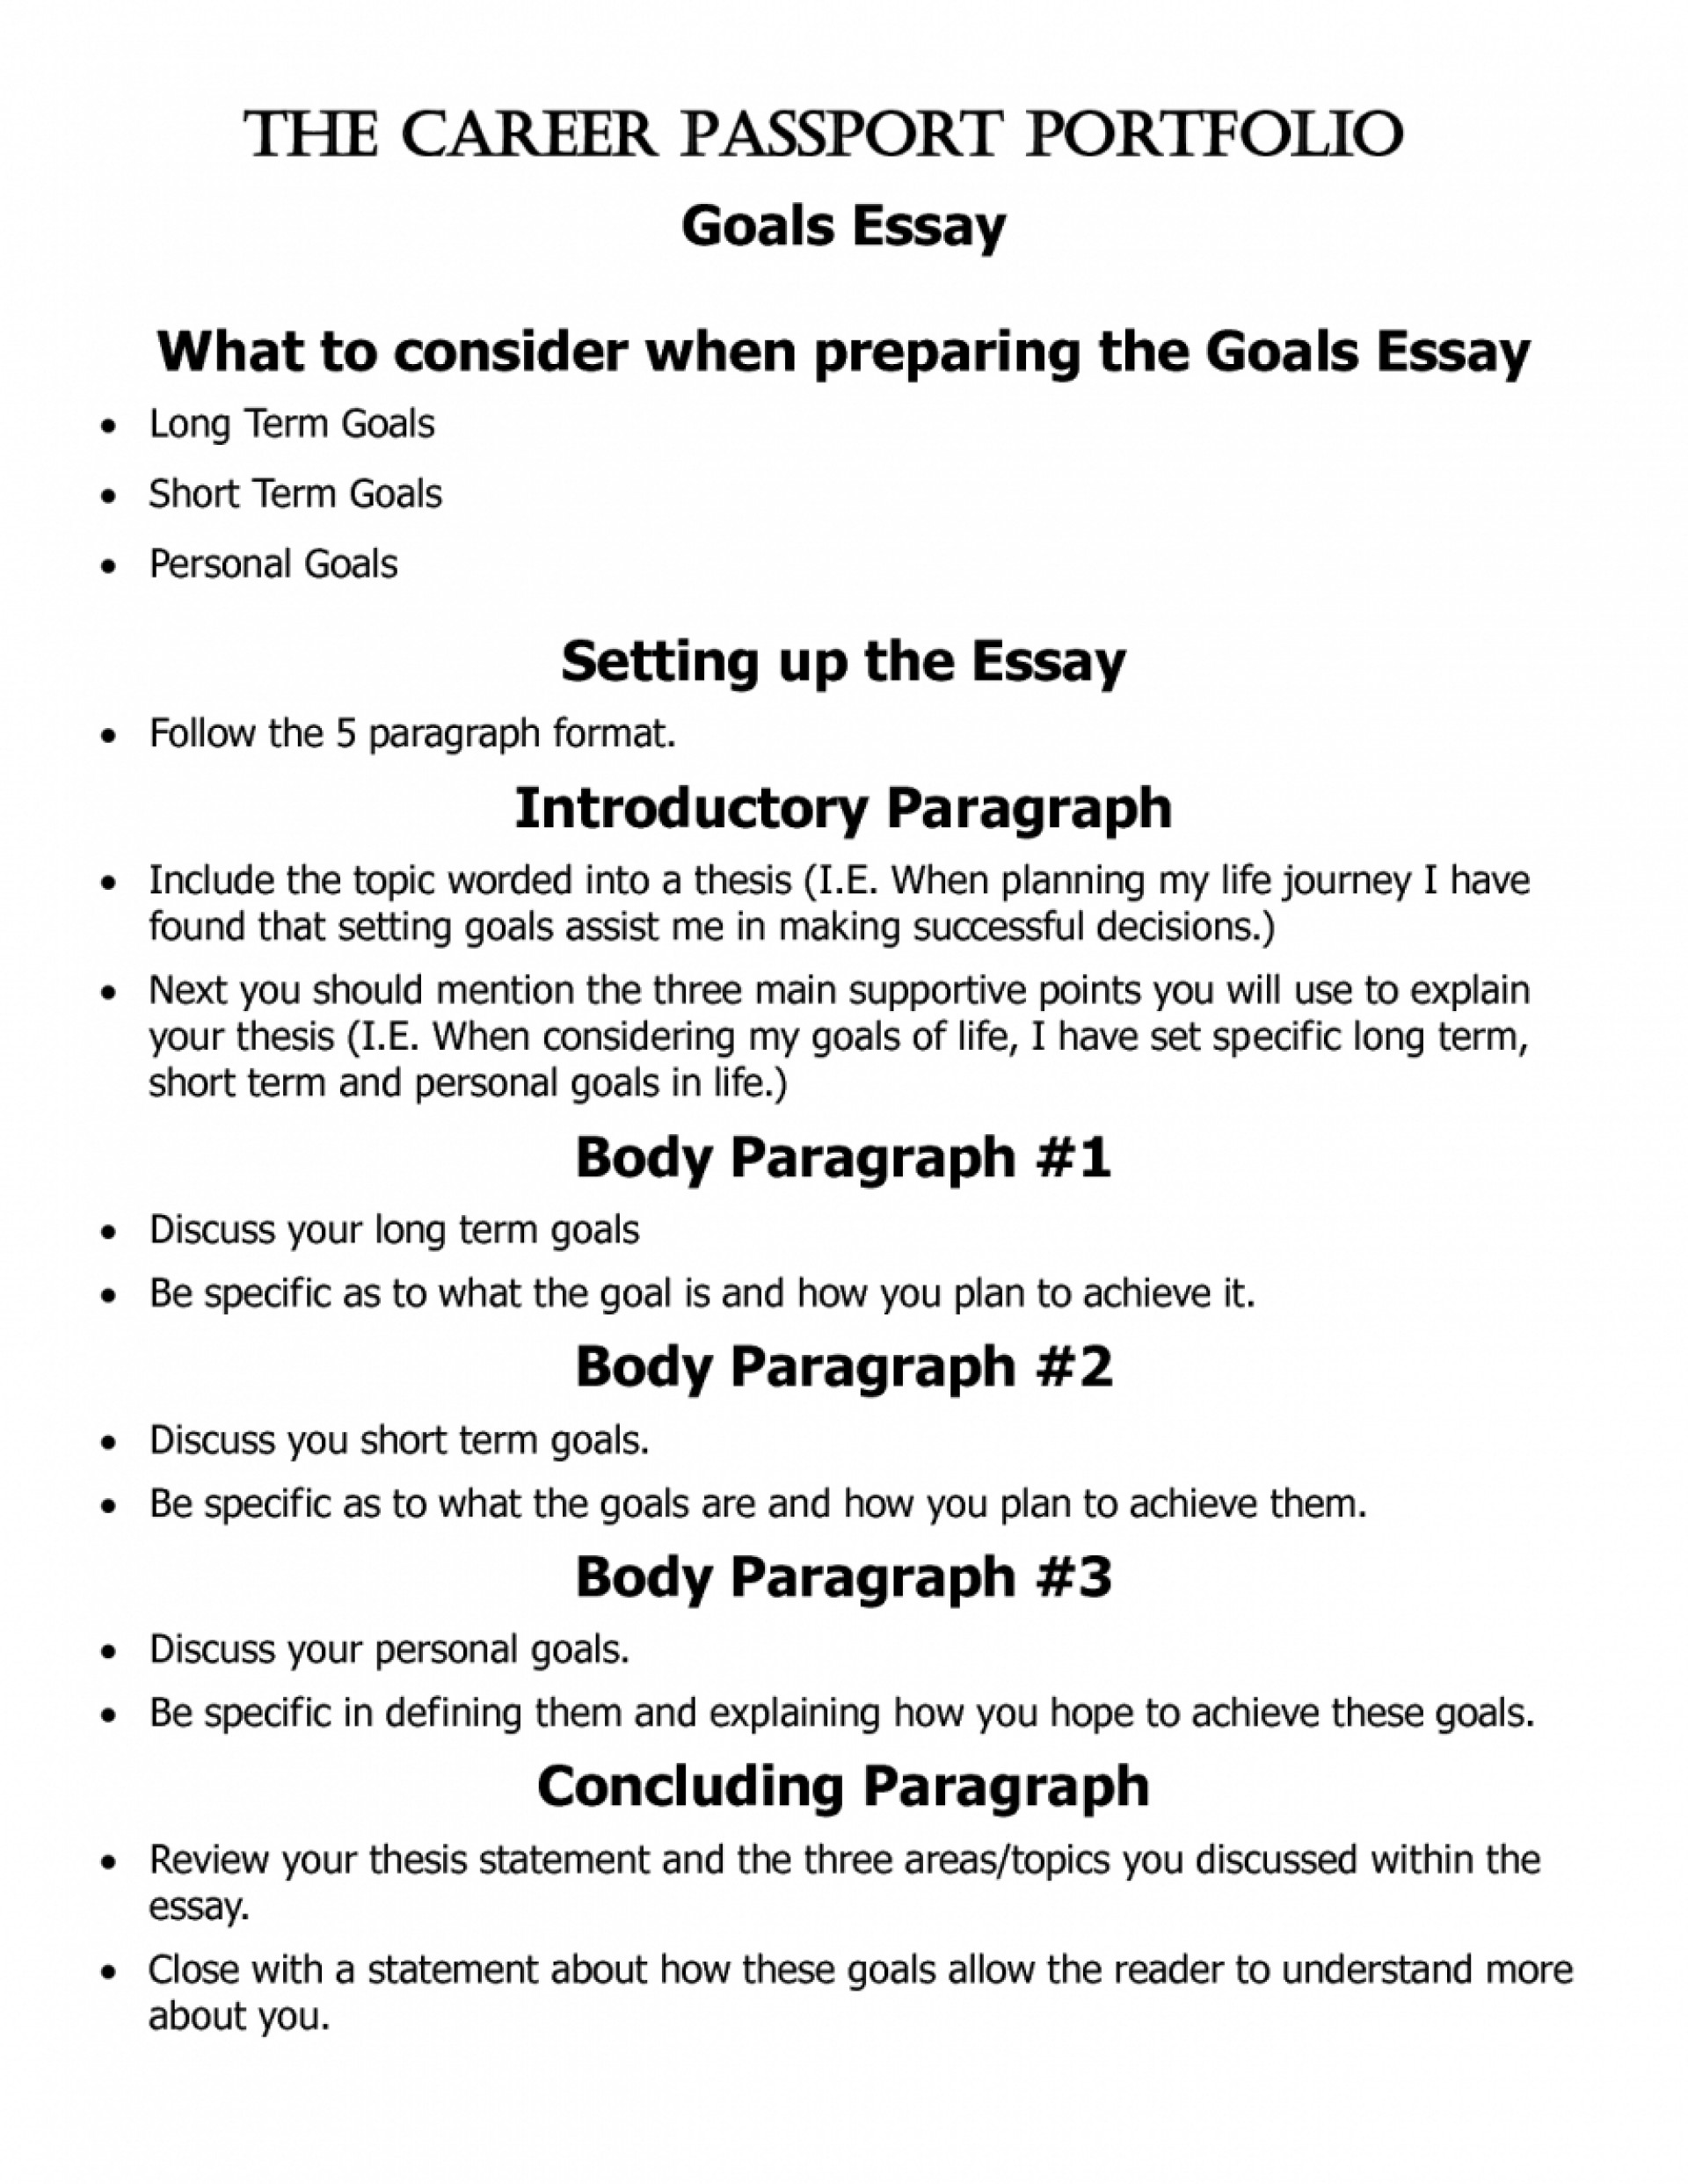 015 Essay Example Goals Short And Long Term Pevita L Awesome Career Sample Graduate School Future For College High 1920